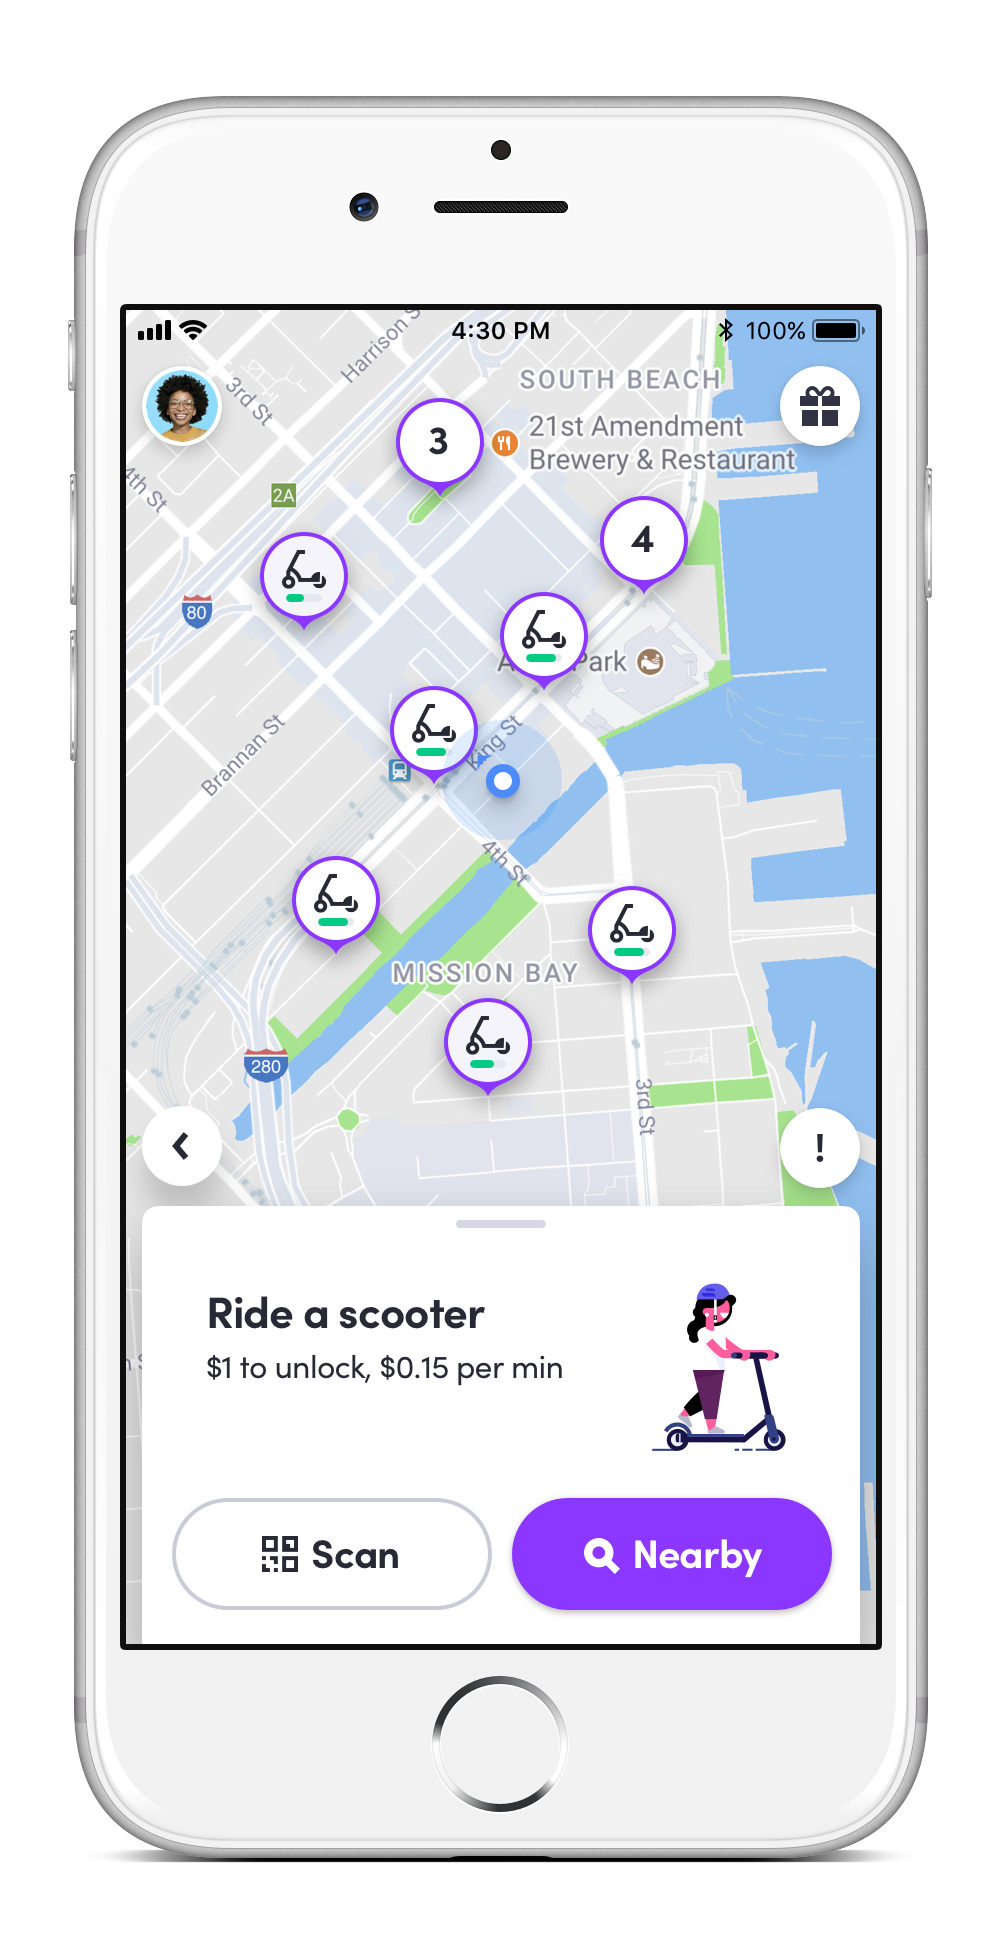 It costs $1 to unlock a scooter and 15 cents for each minute you ride, which includes reservation time and hold time. (Image: Courtesy Lyft)